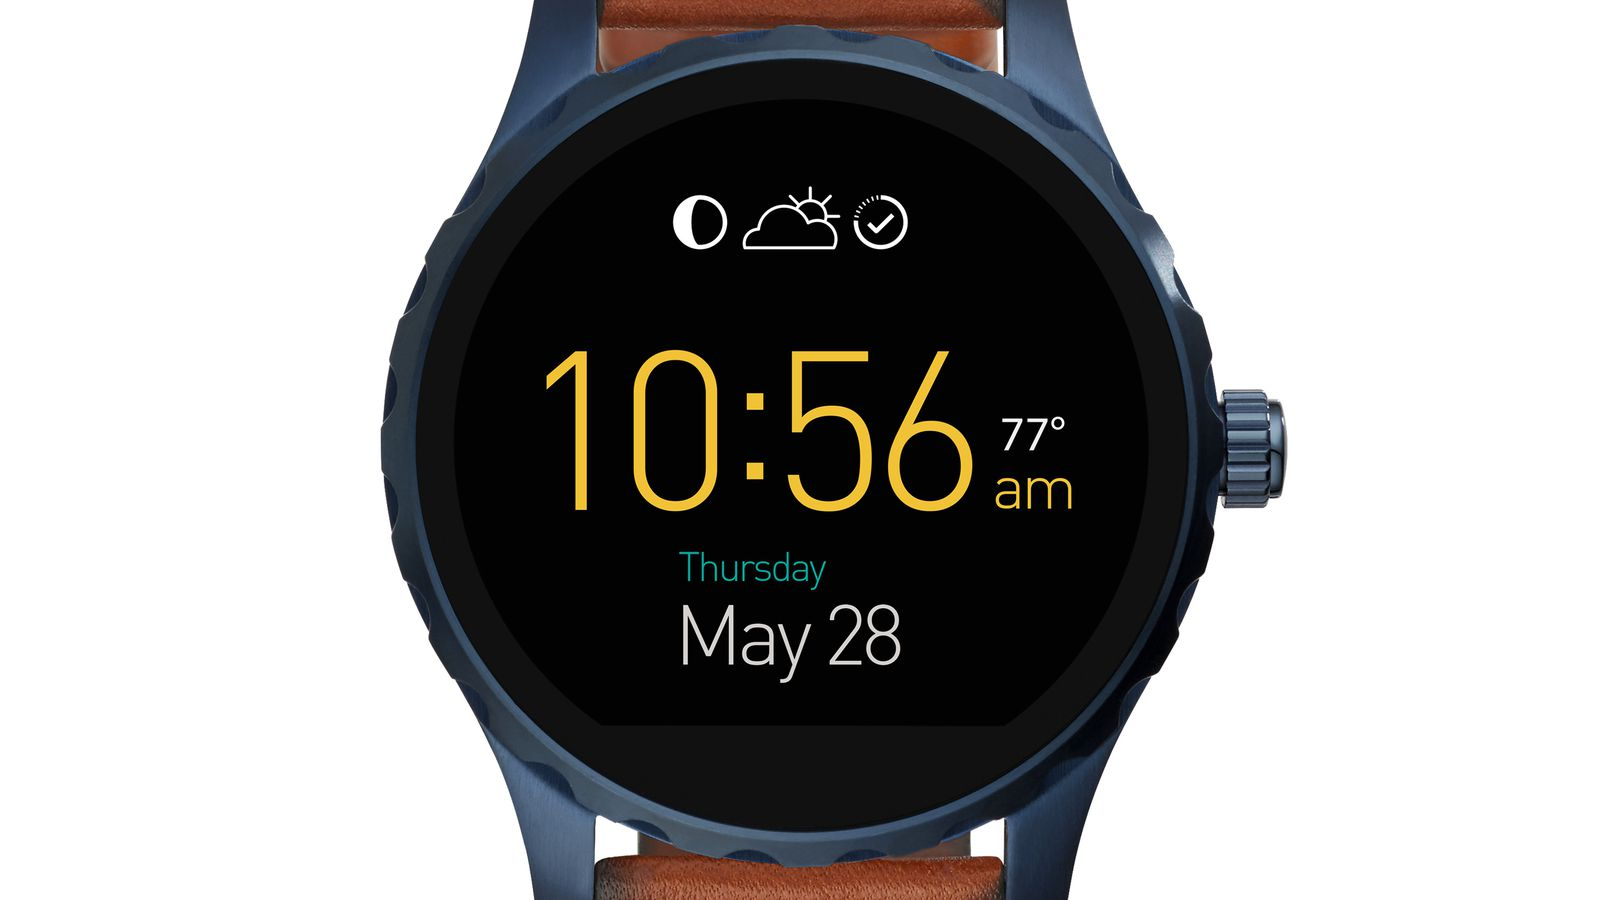 Fossil's new Android Wear smartwatches are available for ...